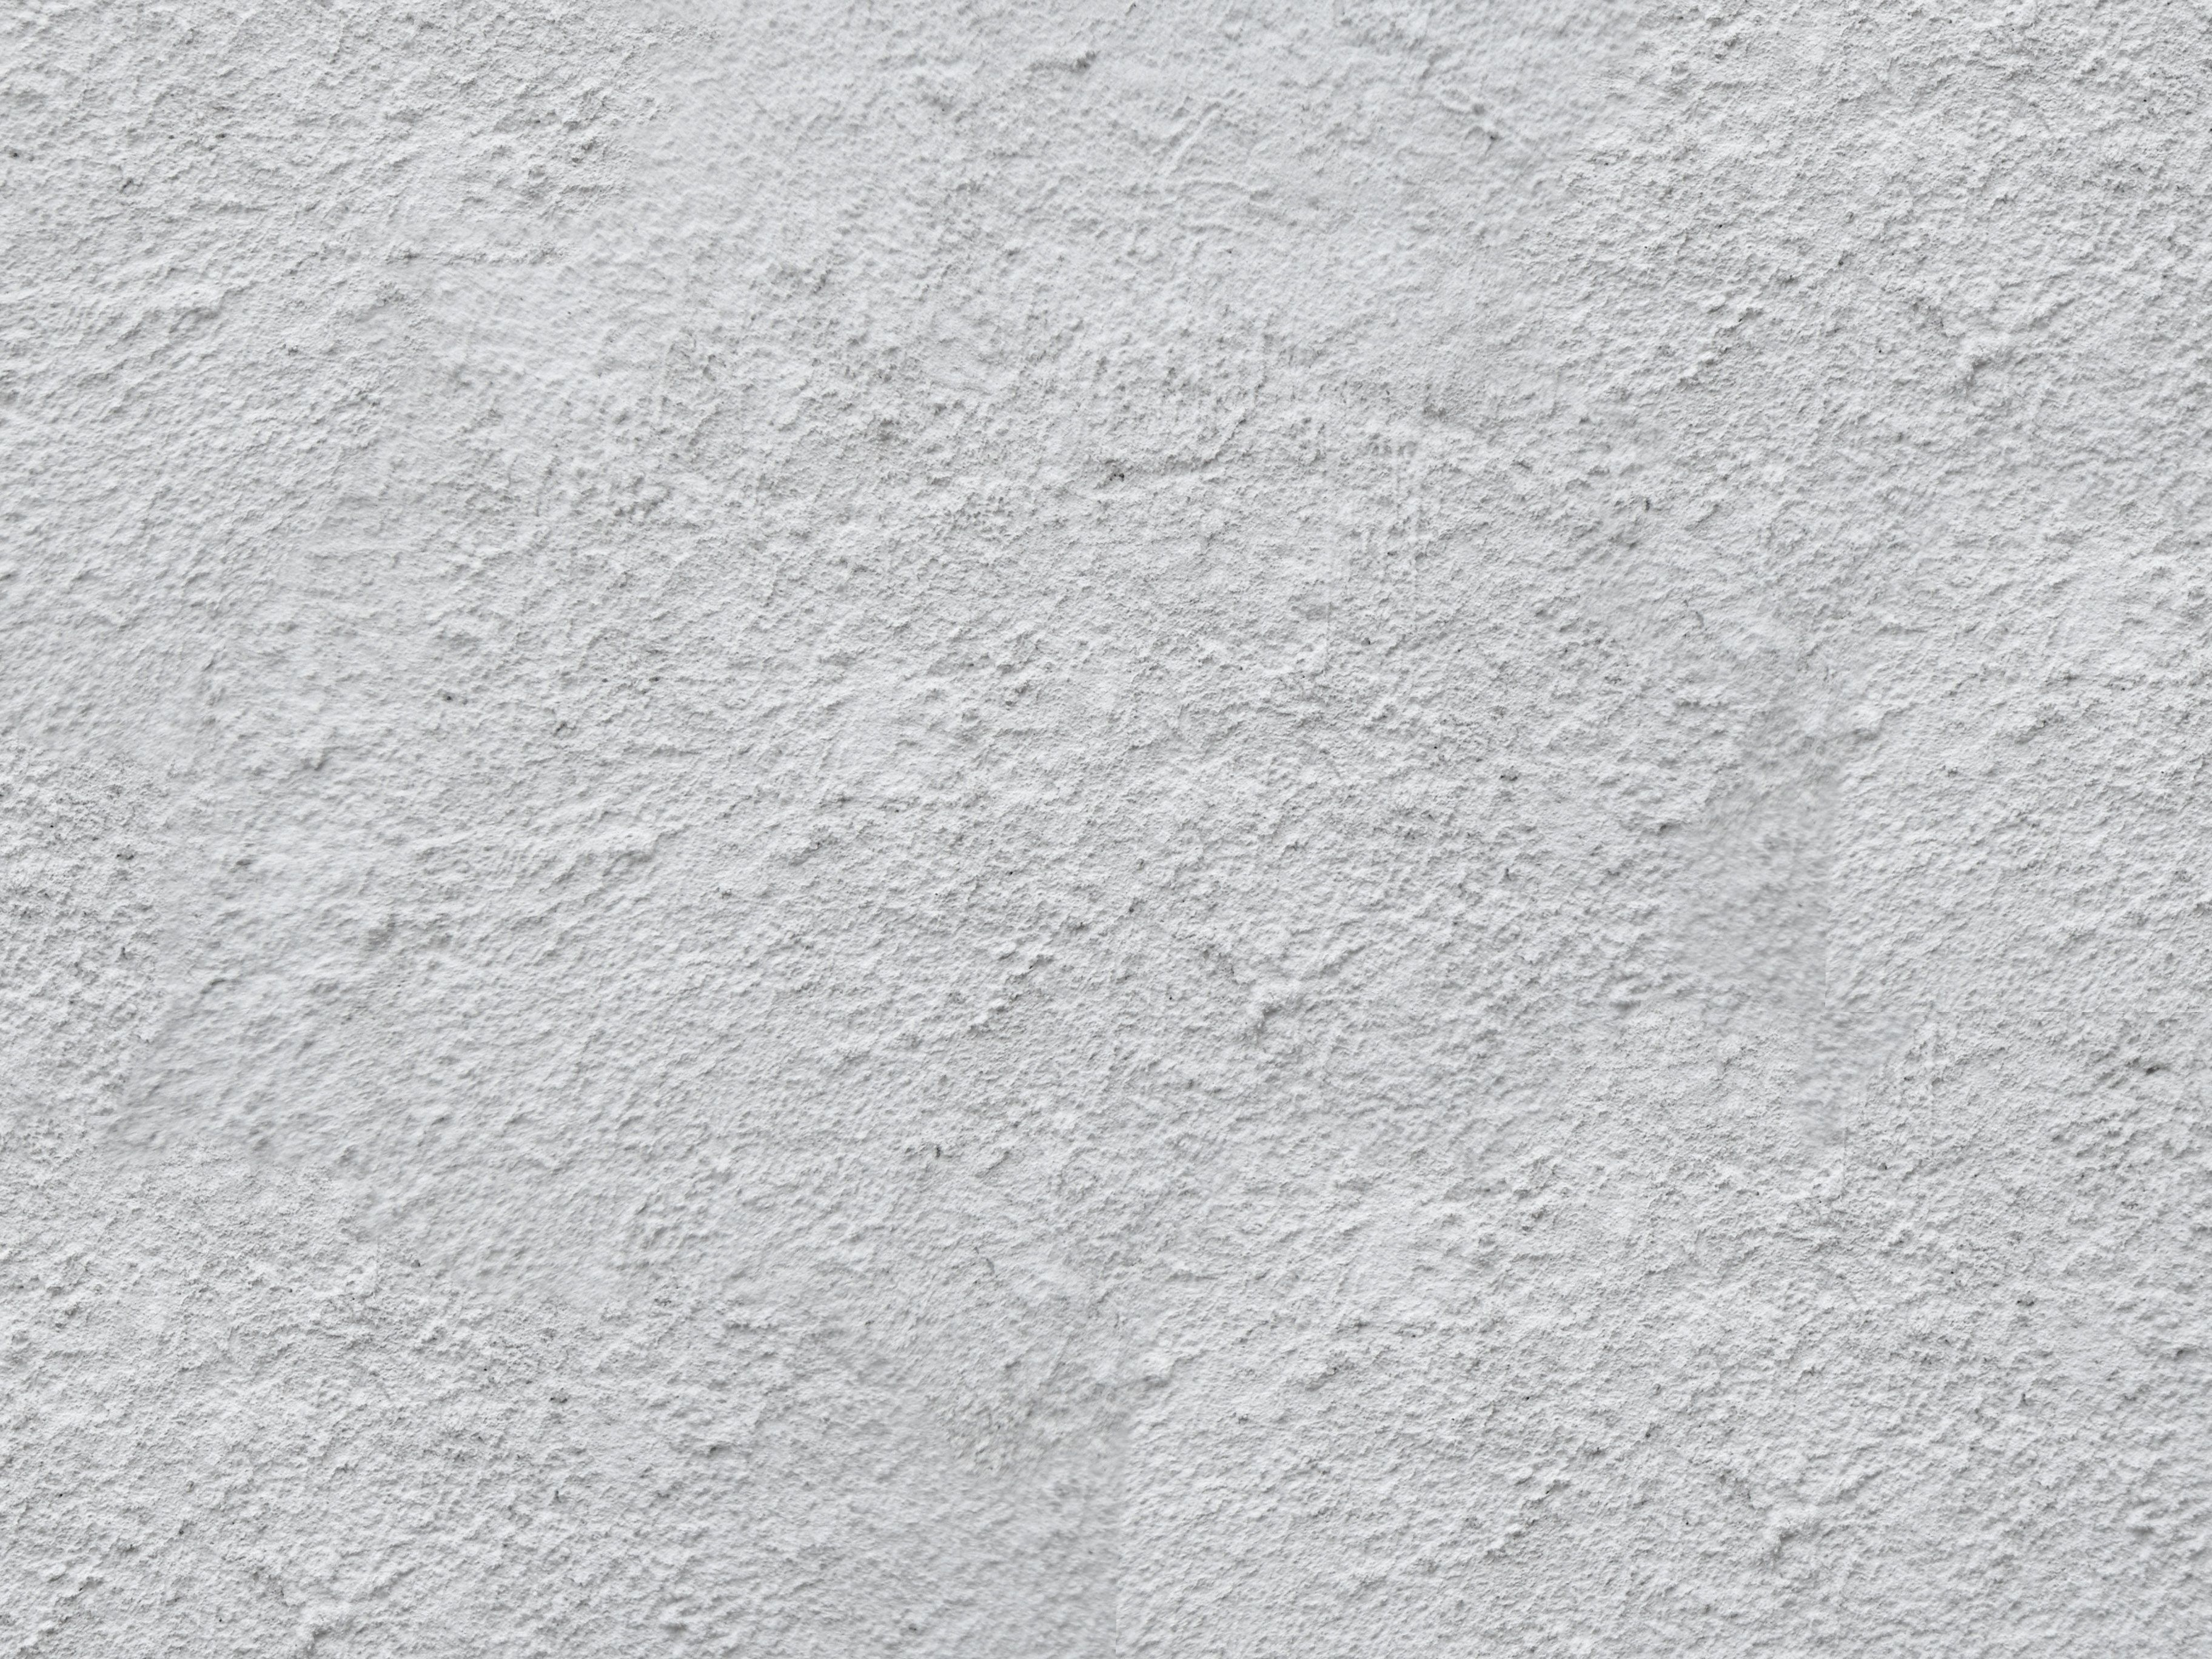 Old Plaster Wall Texture Recherche Google Brushes